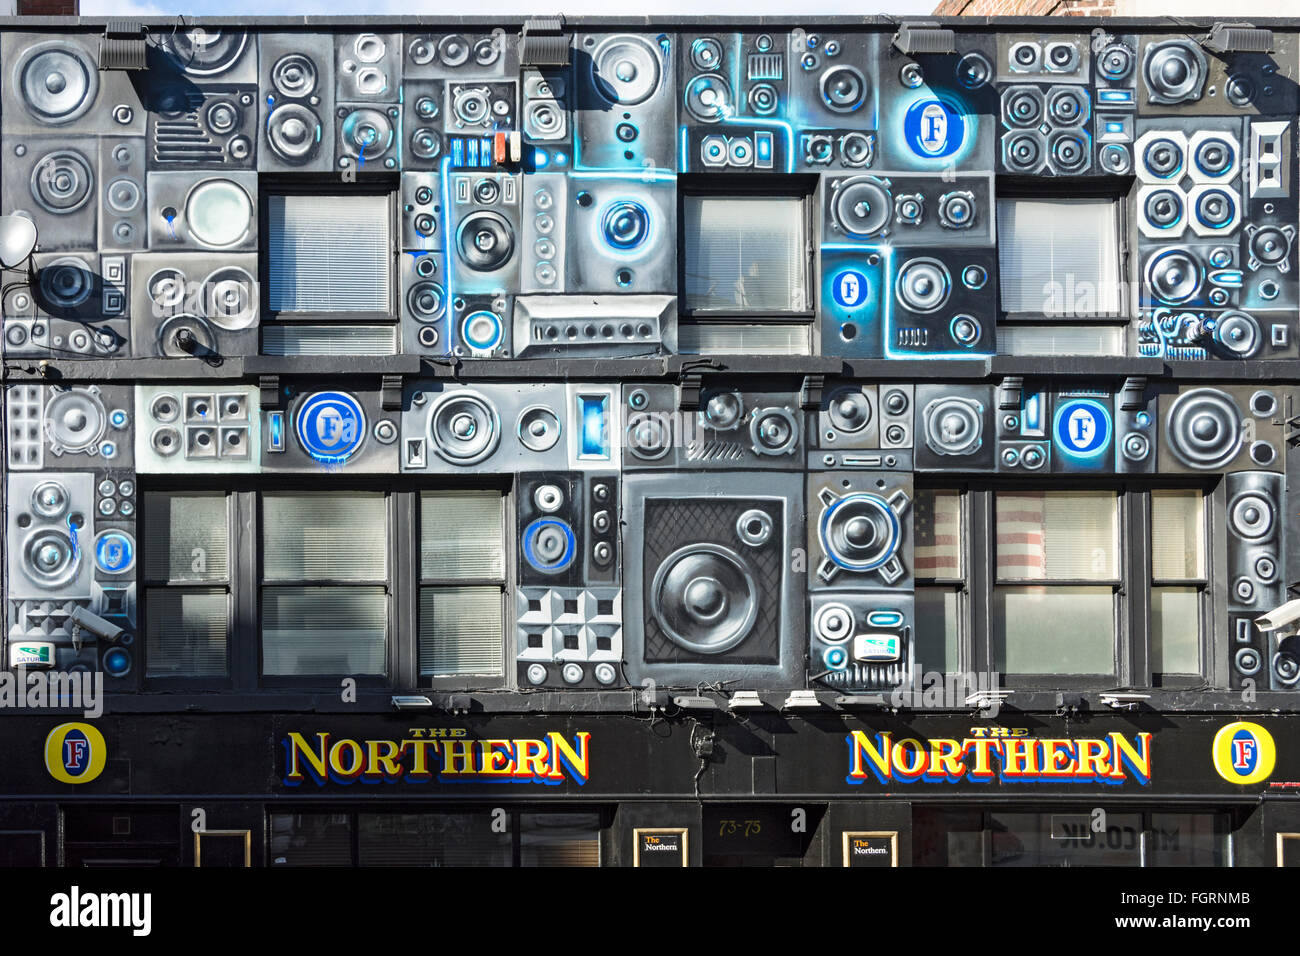 The wall mural on The Northern, a pub on Oldham Street, Northern Quarter, Manchester, England, UK - Stock Image